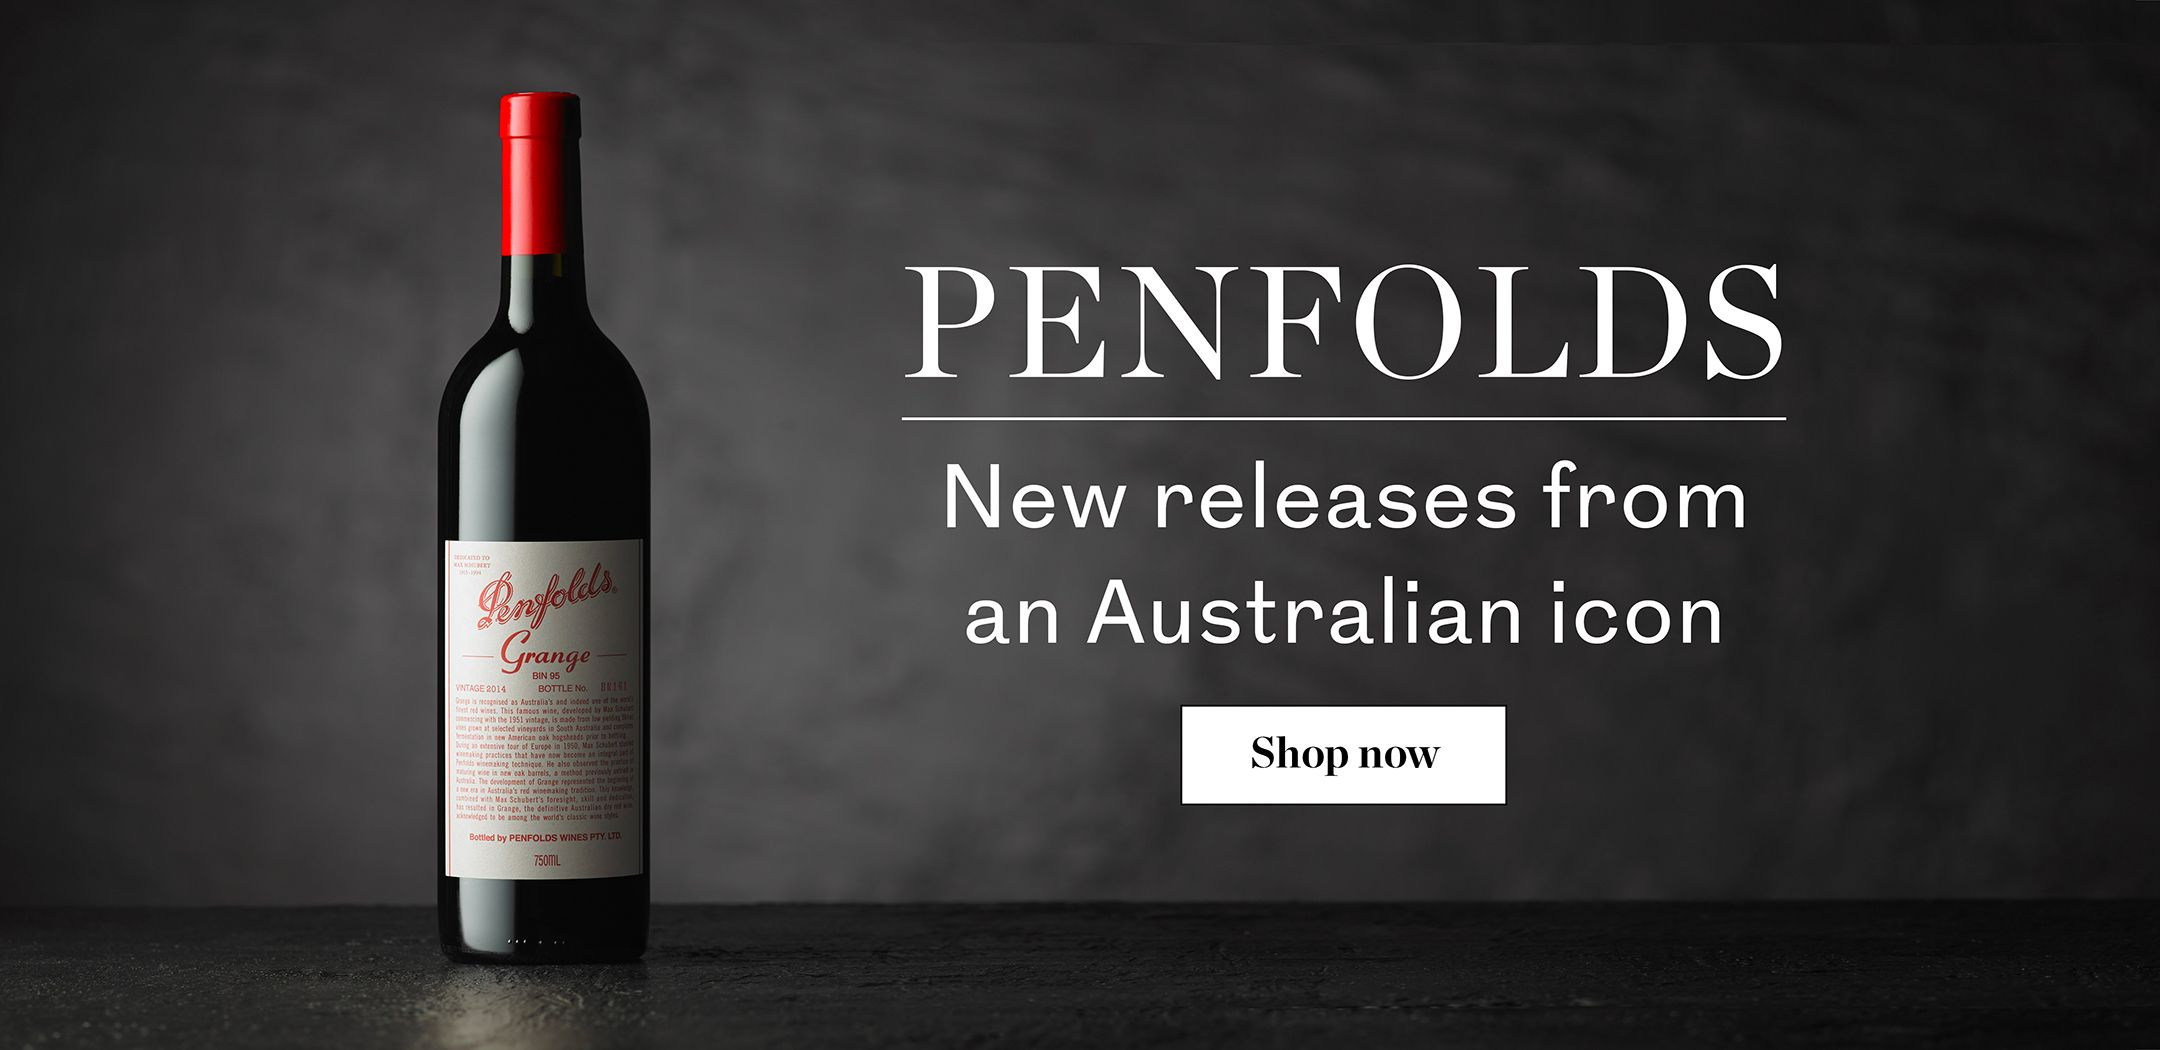 Explore the new releases from Penfolds including the Iconic Grange. Available at Berry Brothers and Rudd